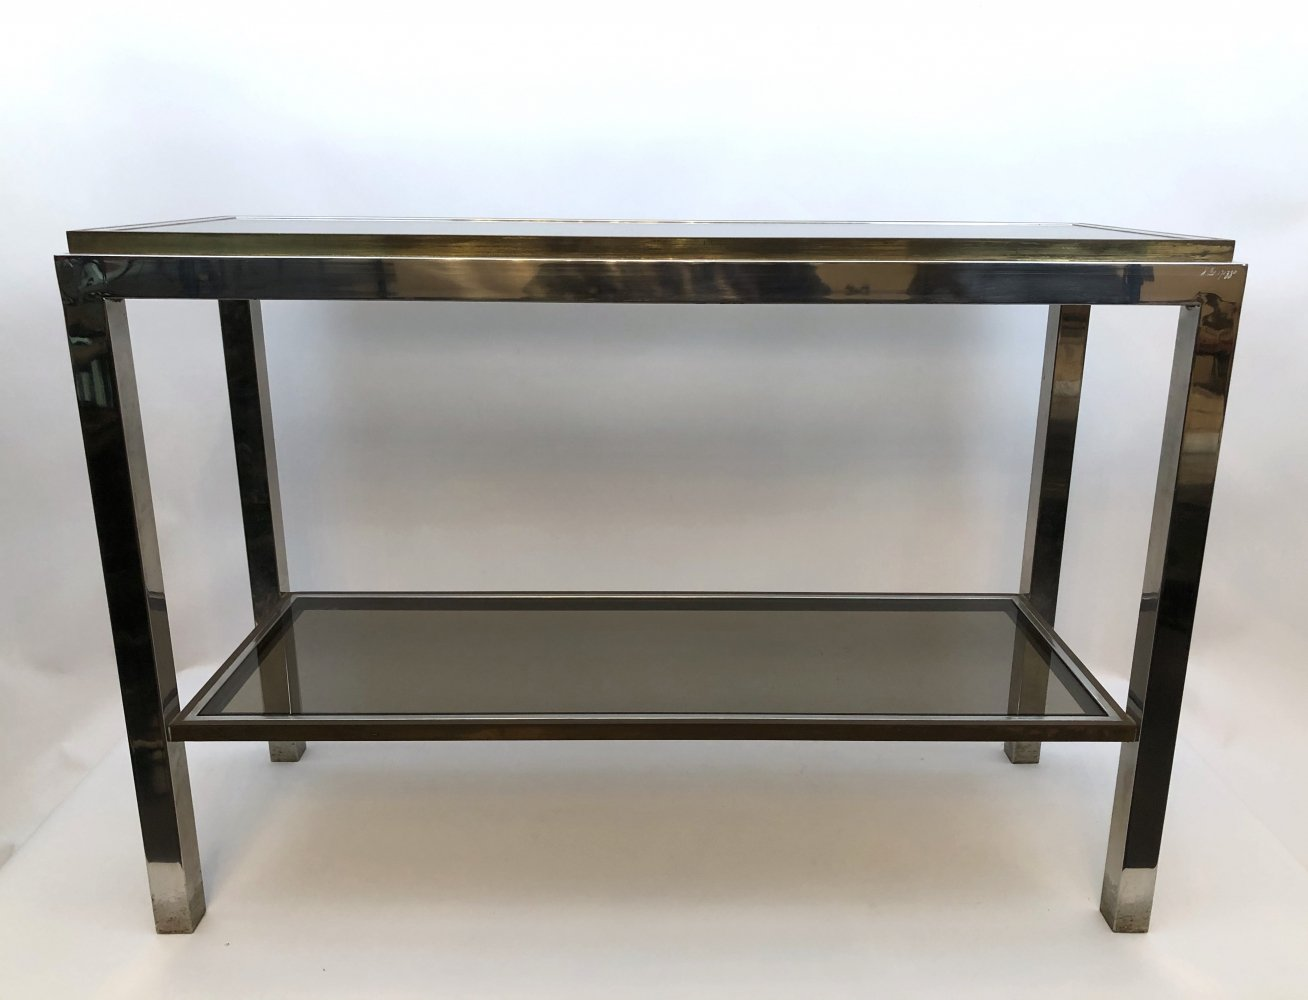 Vintage Italian modern brass & chrome console table by Willy Rizzo. Signed 1970s